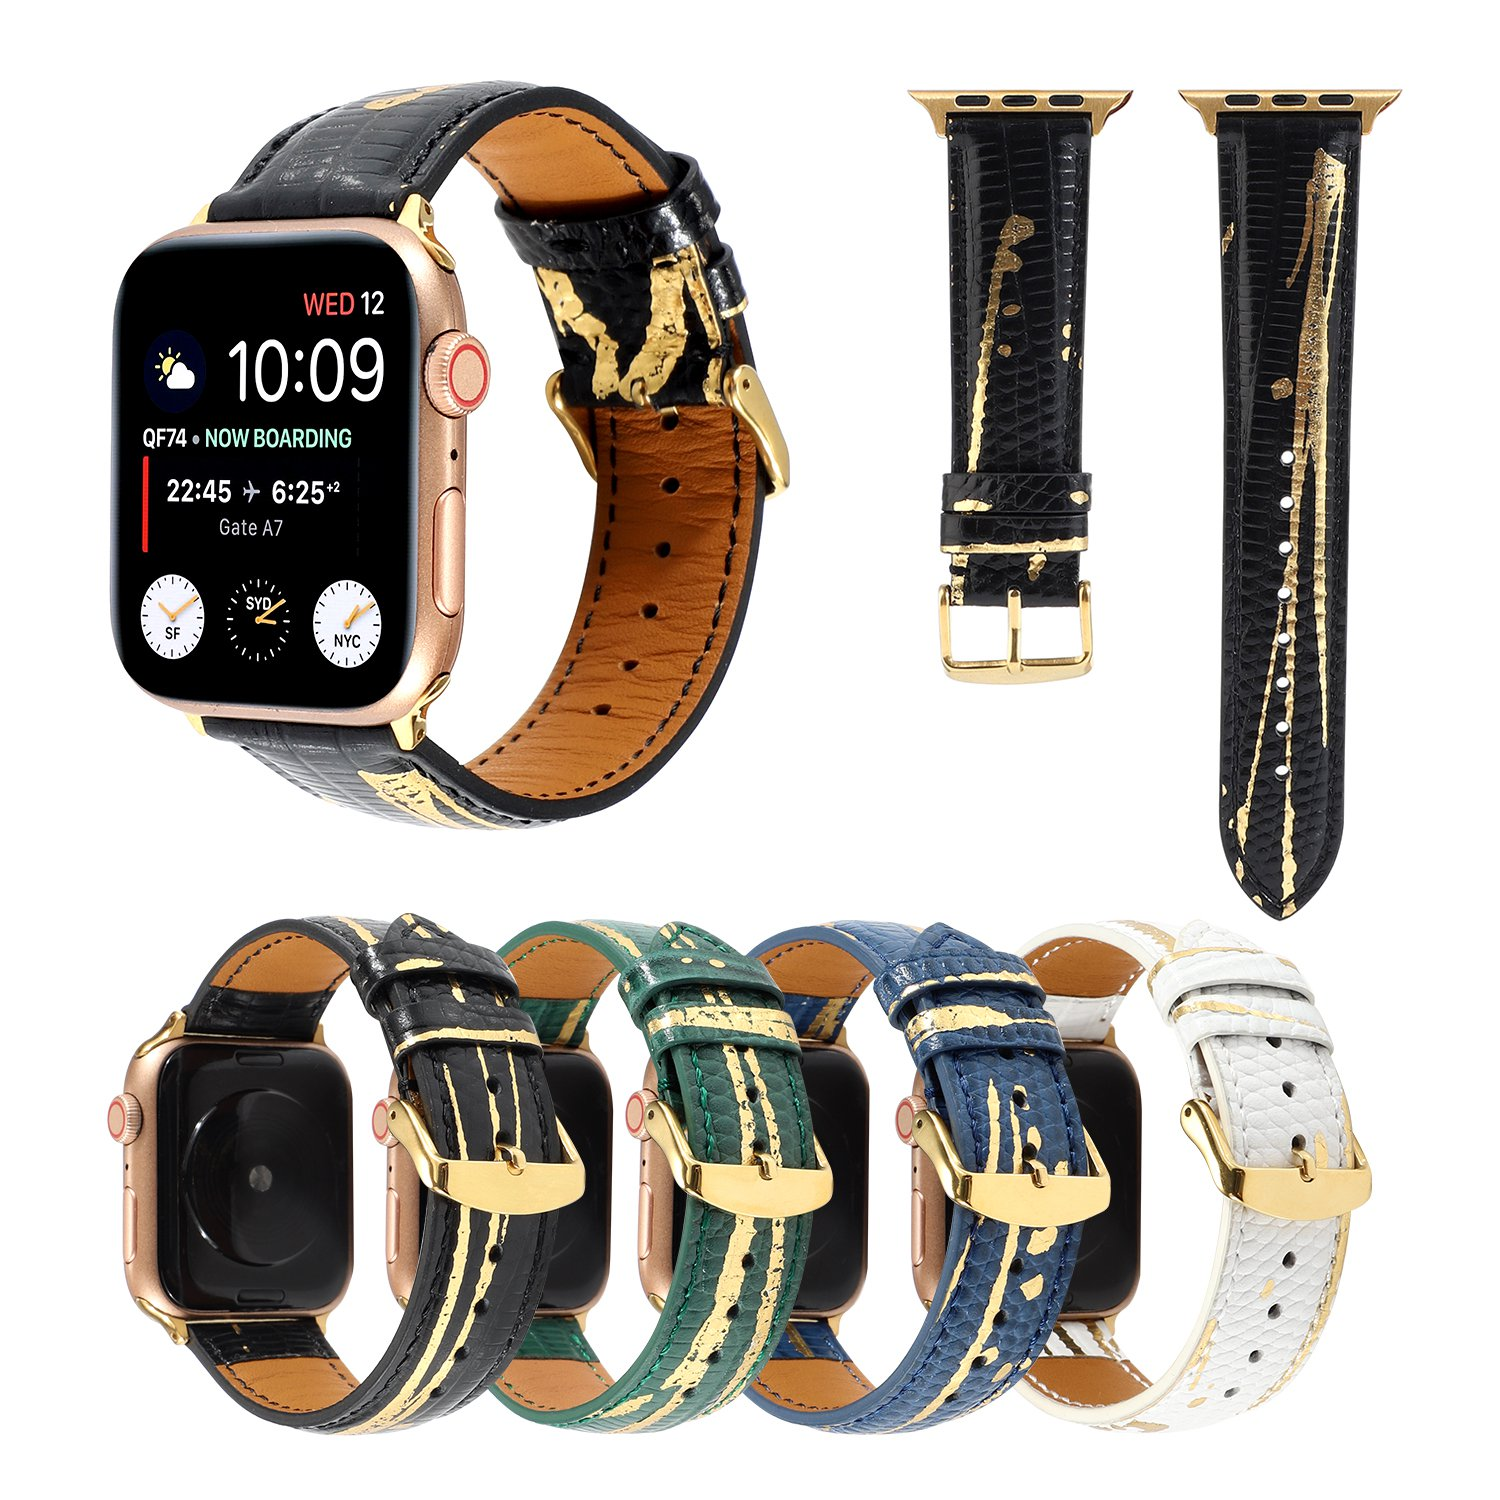 New leather and gold watch strap for genuine leather iwatch Strap series 5 42 mm Band for leather apple band series 6 Hi